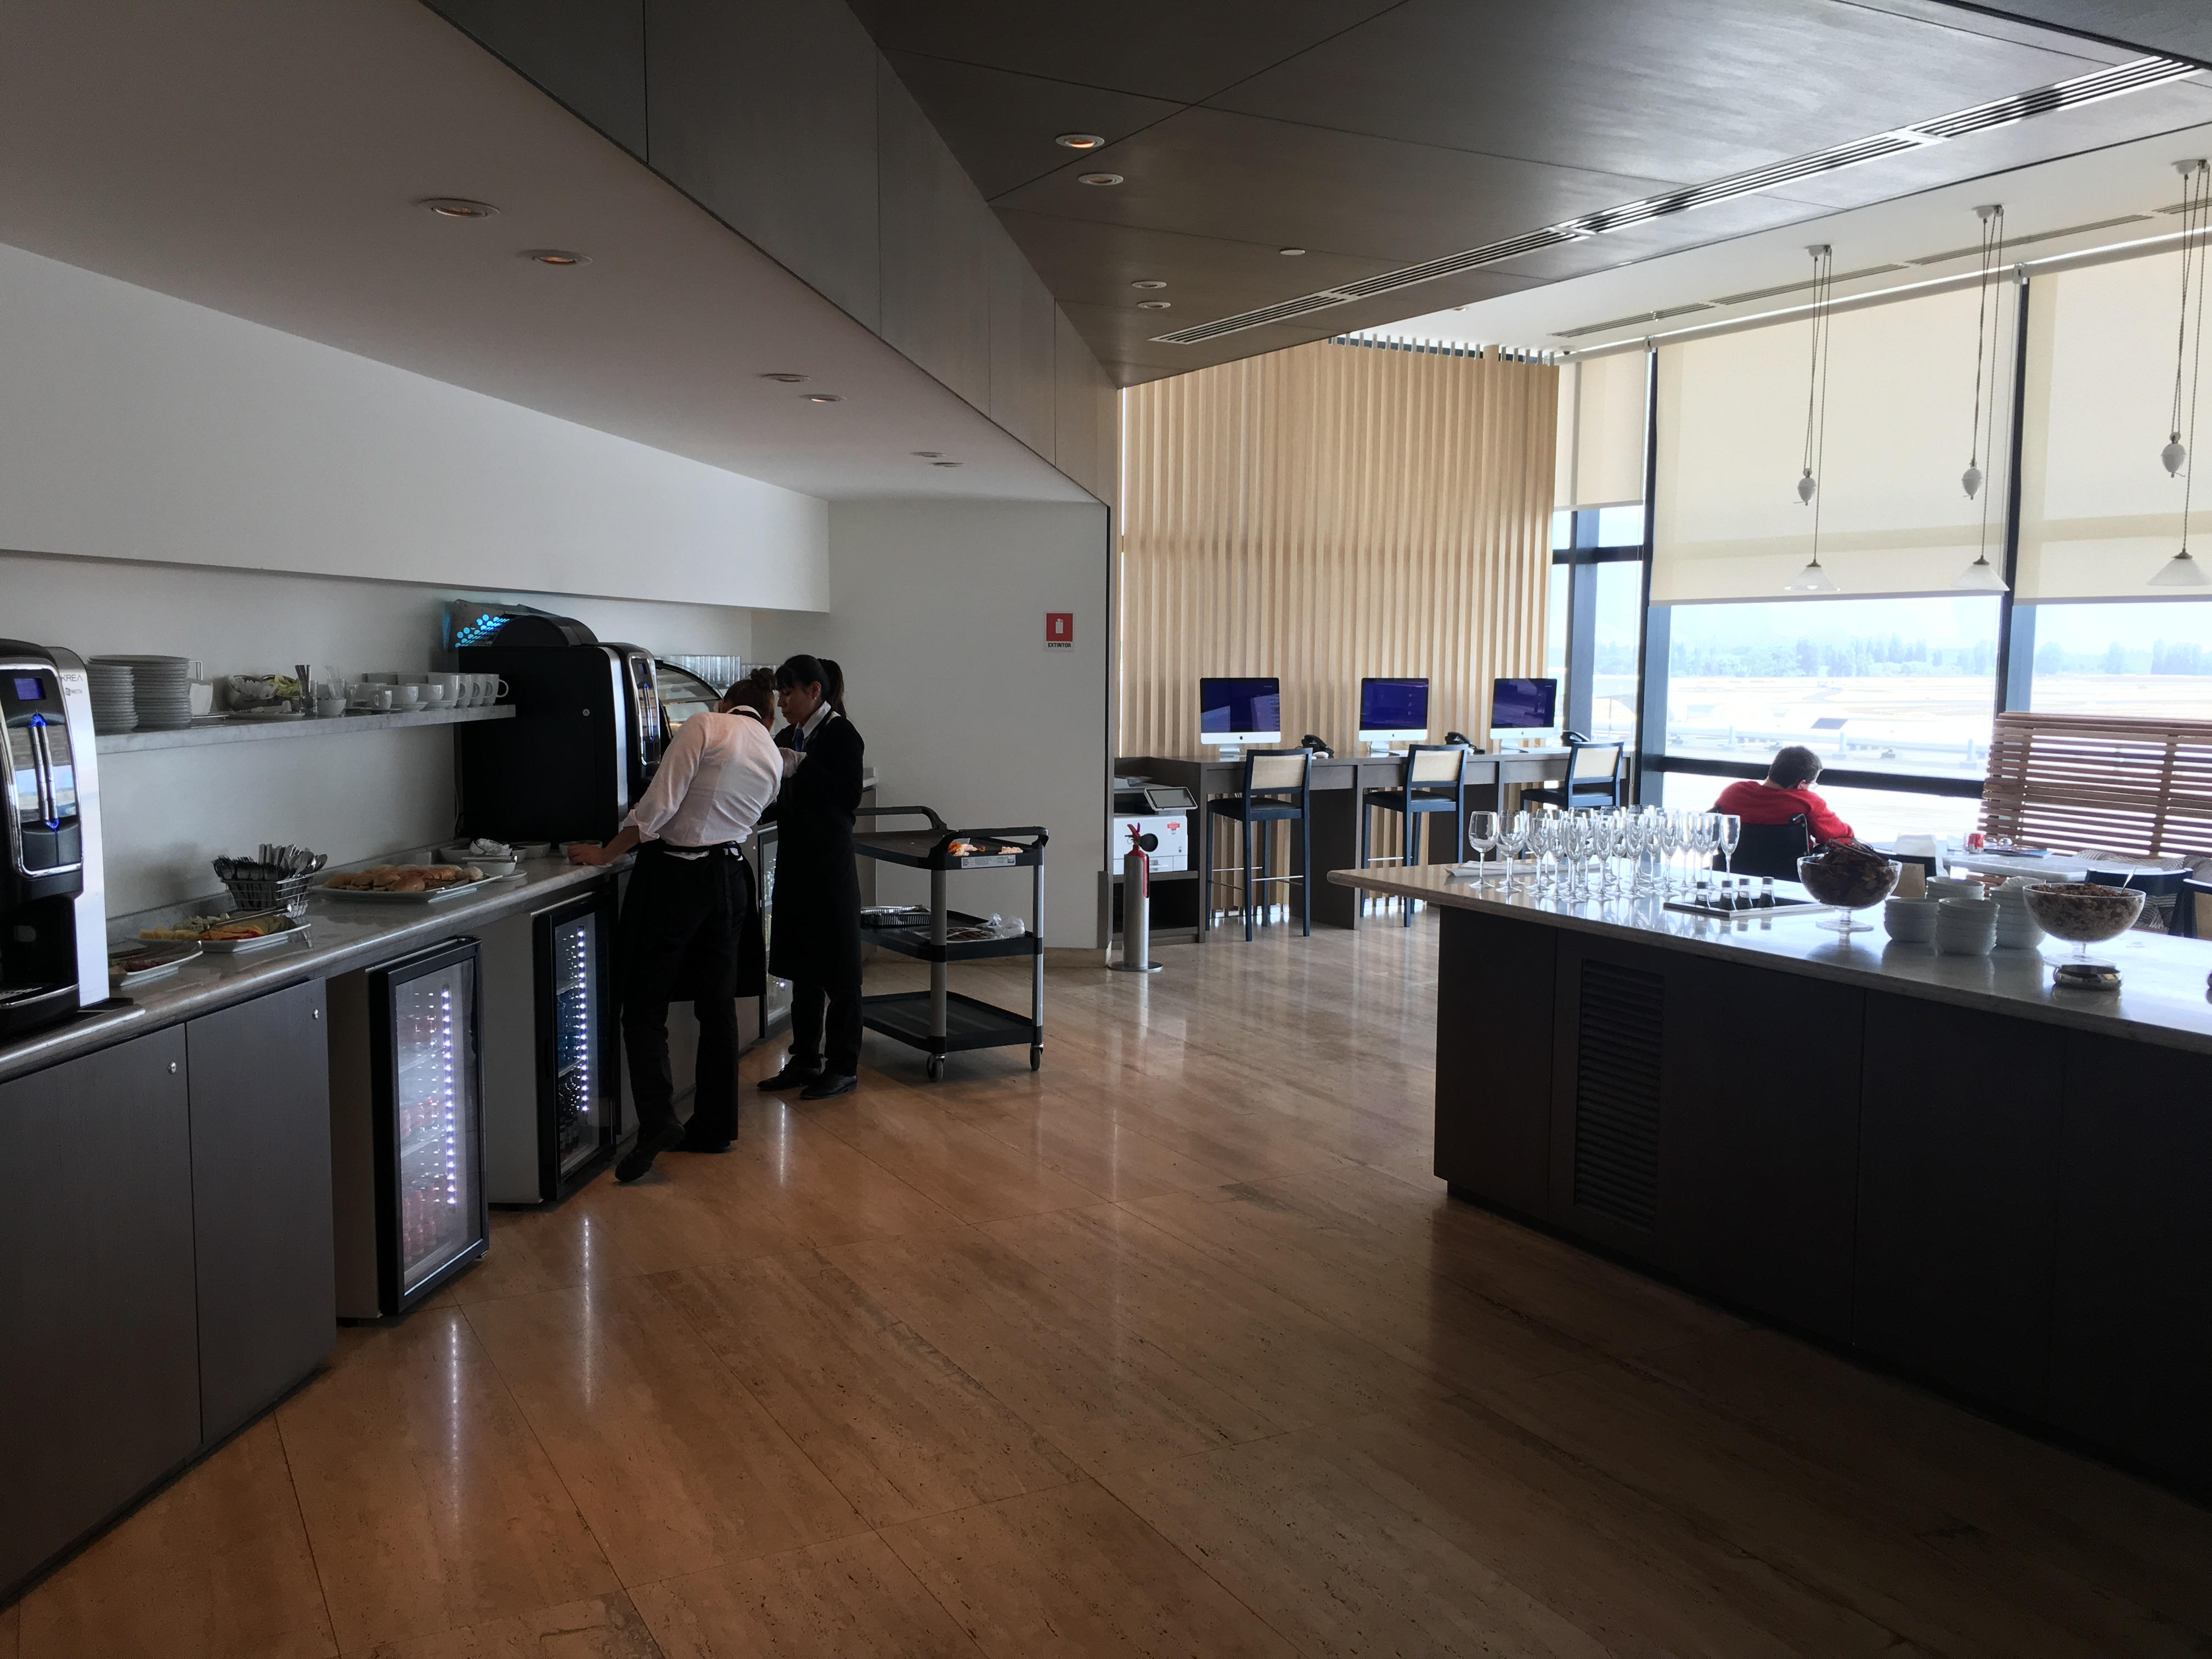 Santiago Airport business lounge